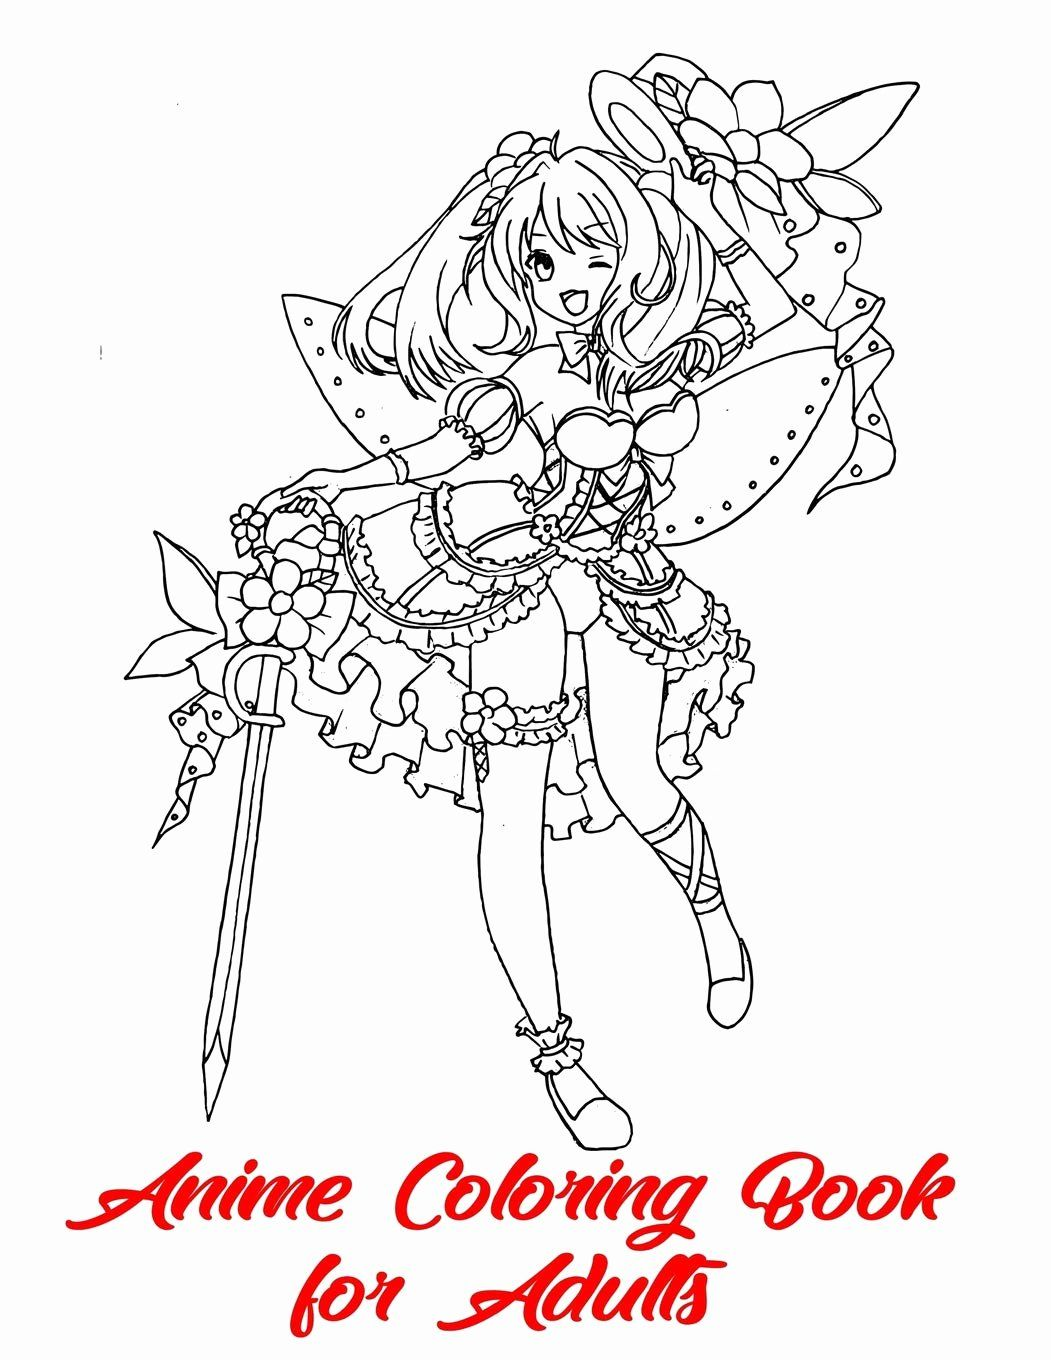 Anime Coloring Books For Adults Fresh 71d4u4c Vwl Coloring Sheetsme Book Amazon For Adults